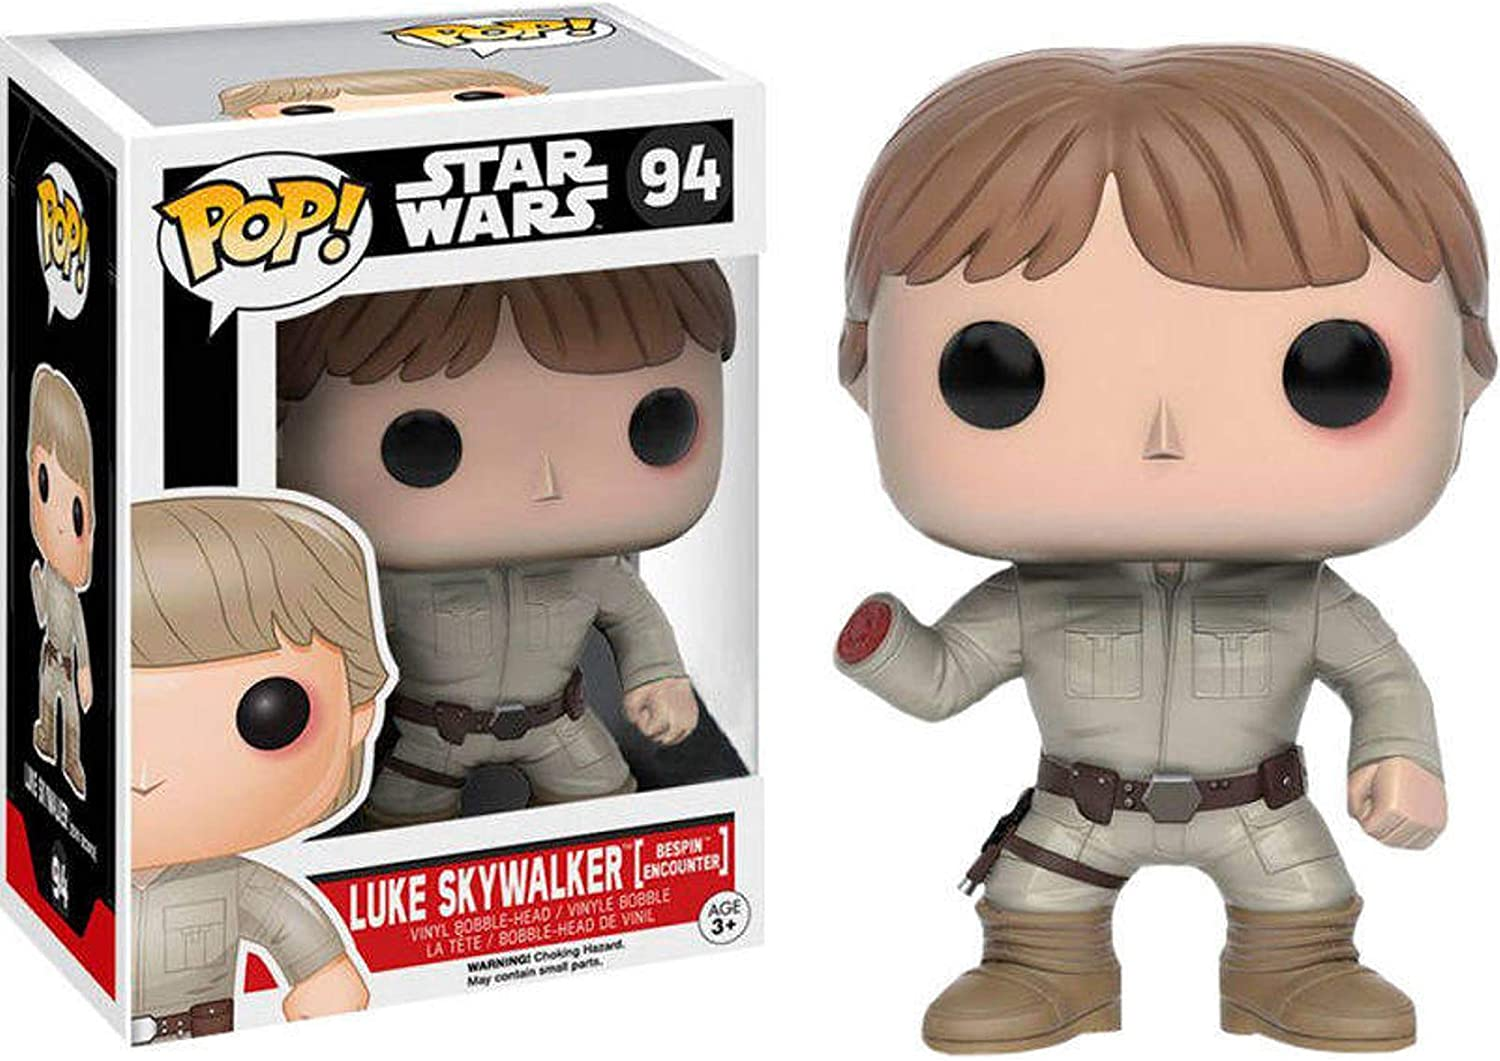 Star Wars Luke Skywalker Bespin encuentro celebración vinilo Funko exclusivo POP!